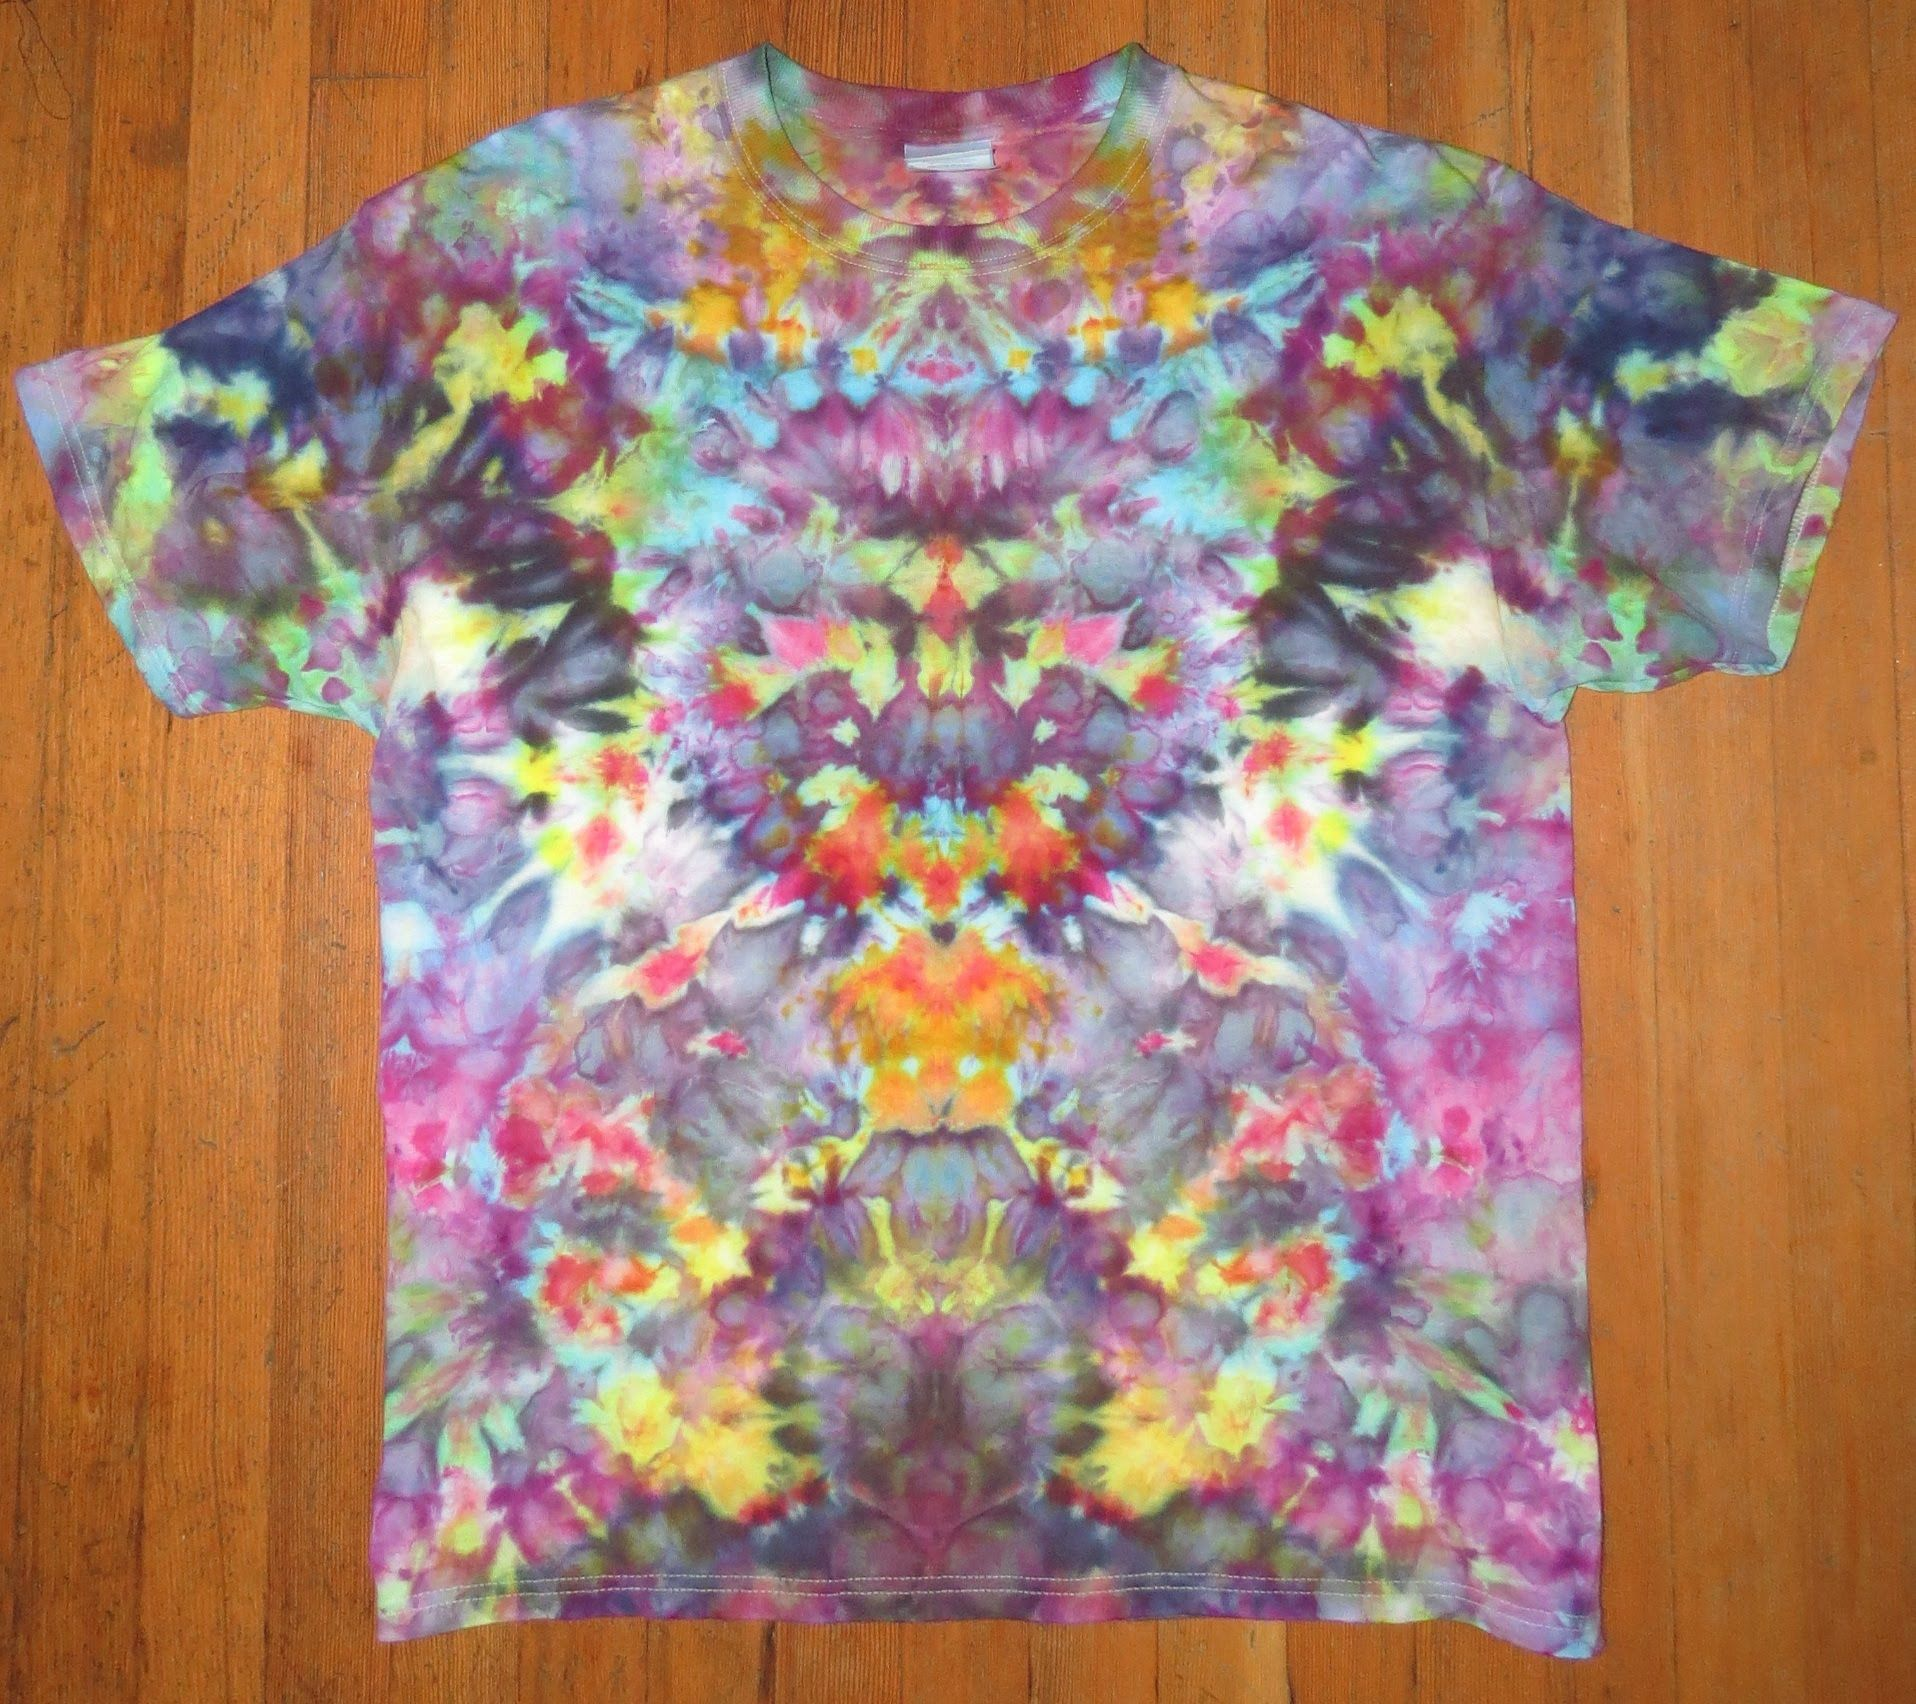 adb938e74731 Secrets of Tie Dye  Psychedelic Mindscape - Part 1 This tie dye style I  developed is the fruit of years of experience